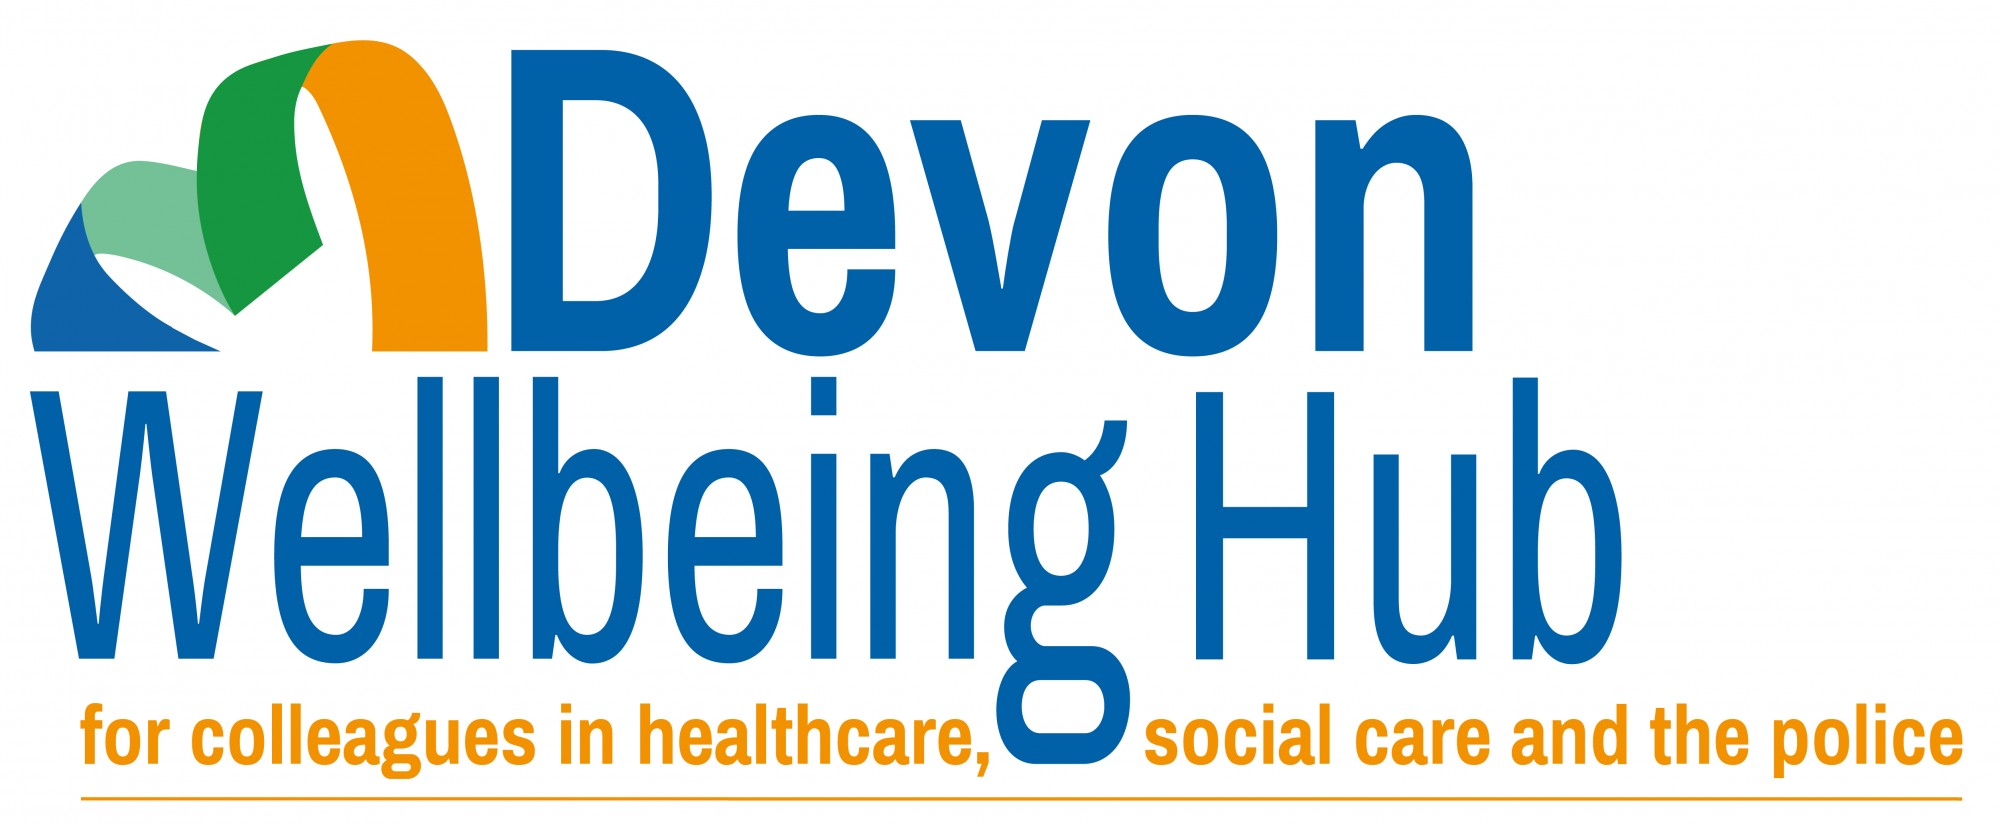 Devon Wellbeing Hub launches to support staff in healthcare, social care and the Police